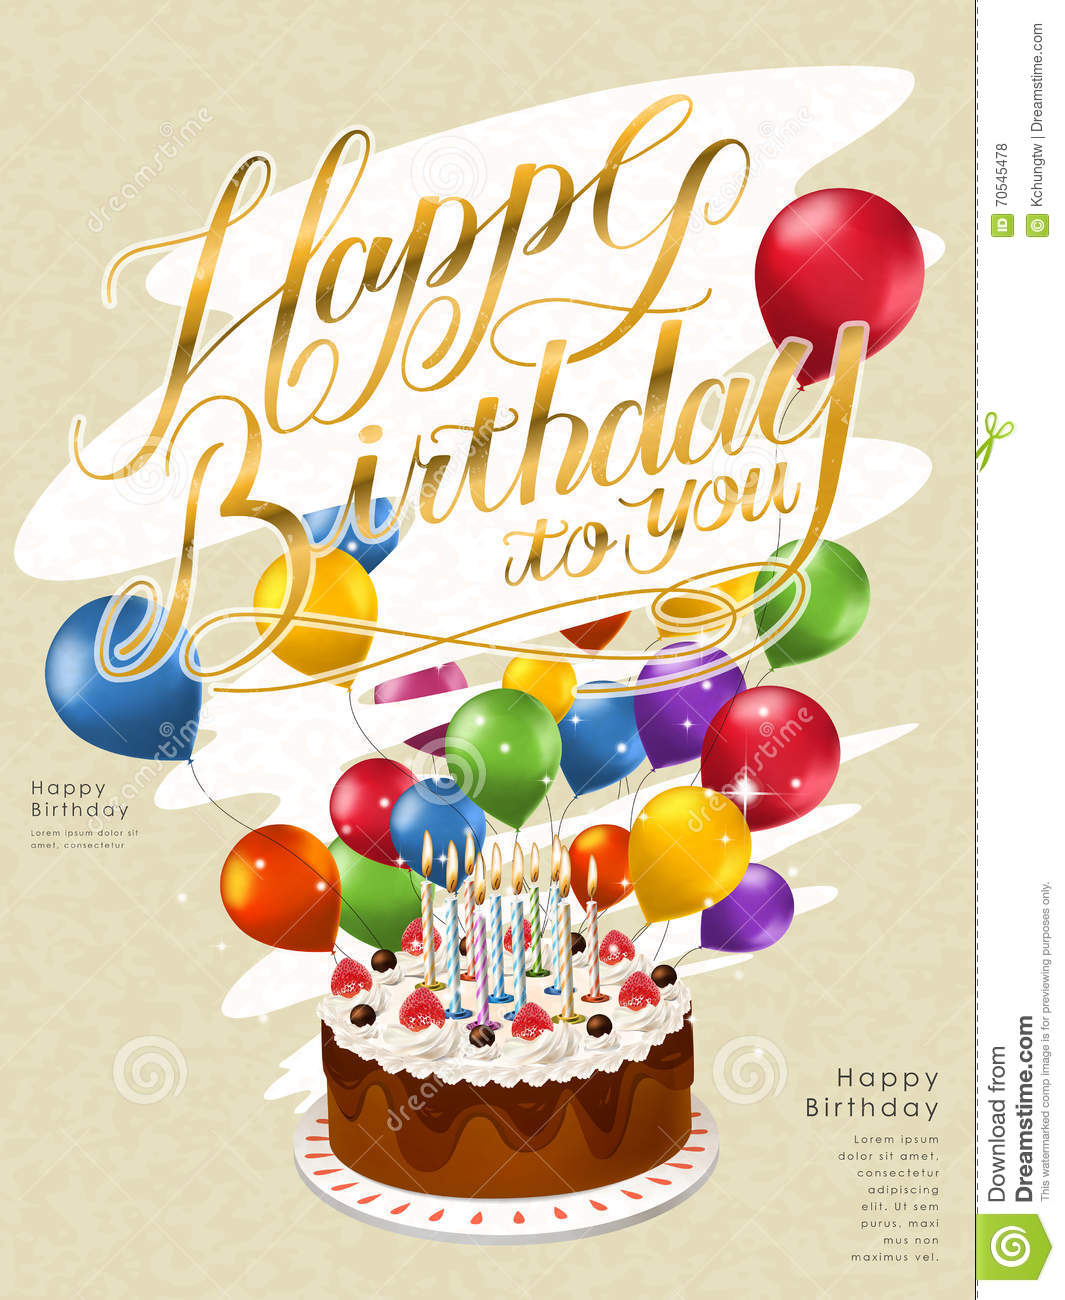 Happy Birthday Poster Template Design Stock Vector - Image: 70545478